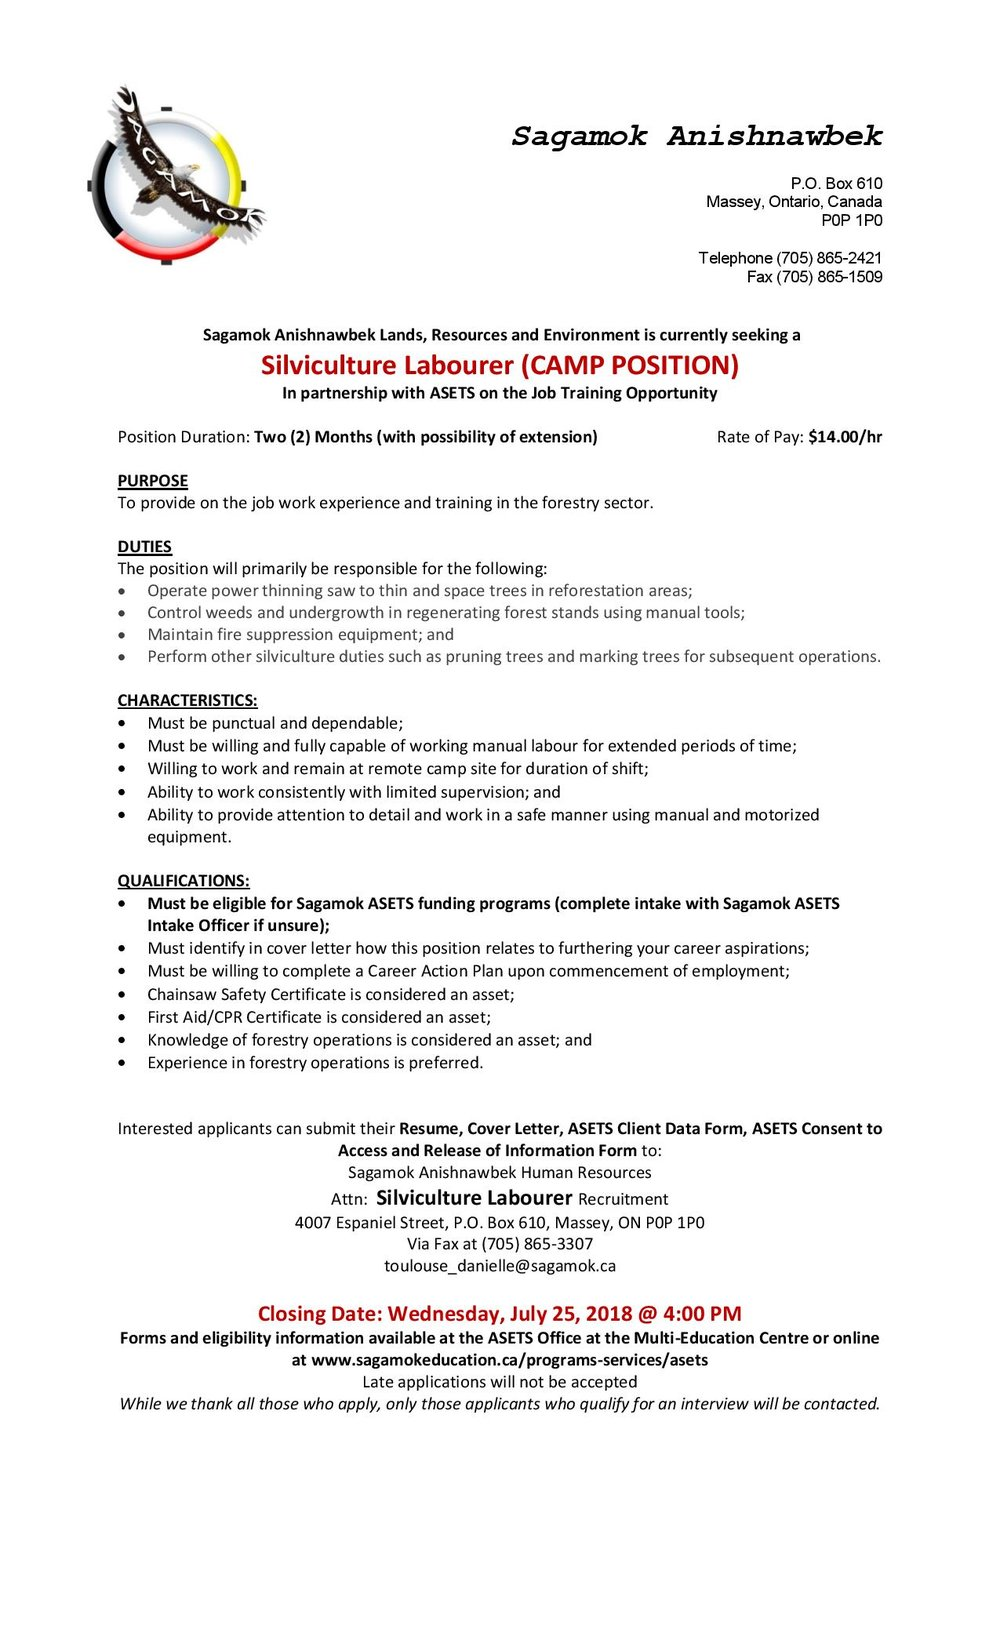 LRE Brushing Job Posting-Labourer-page-001.jpg